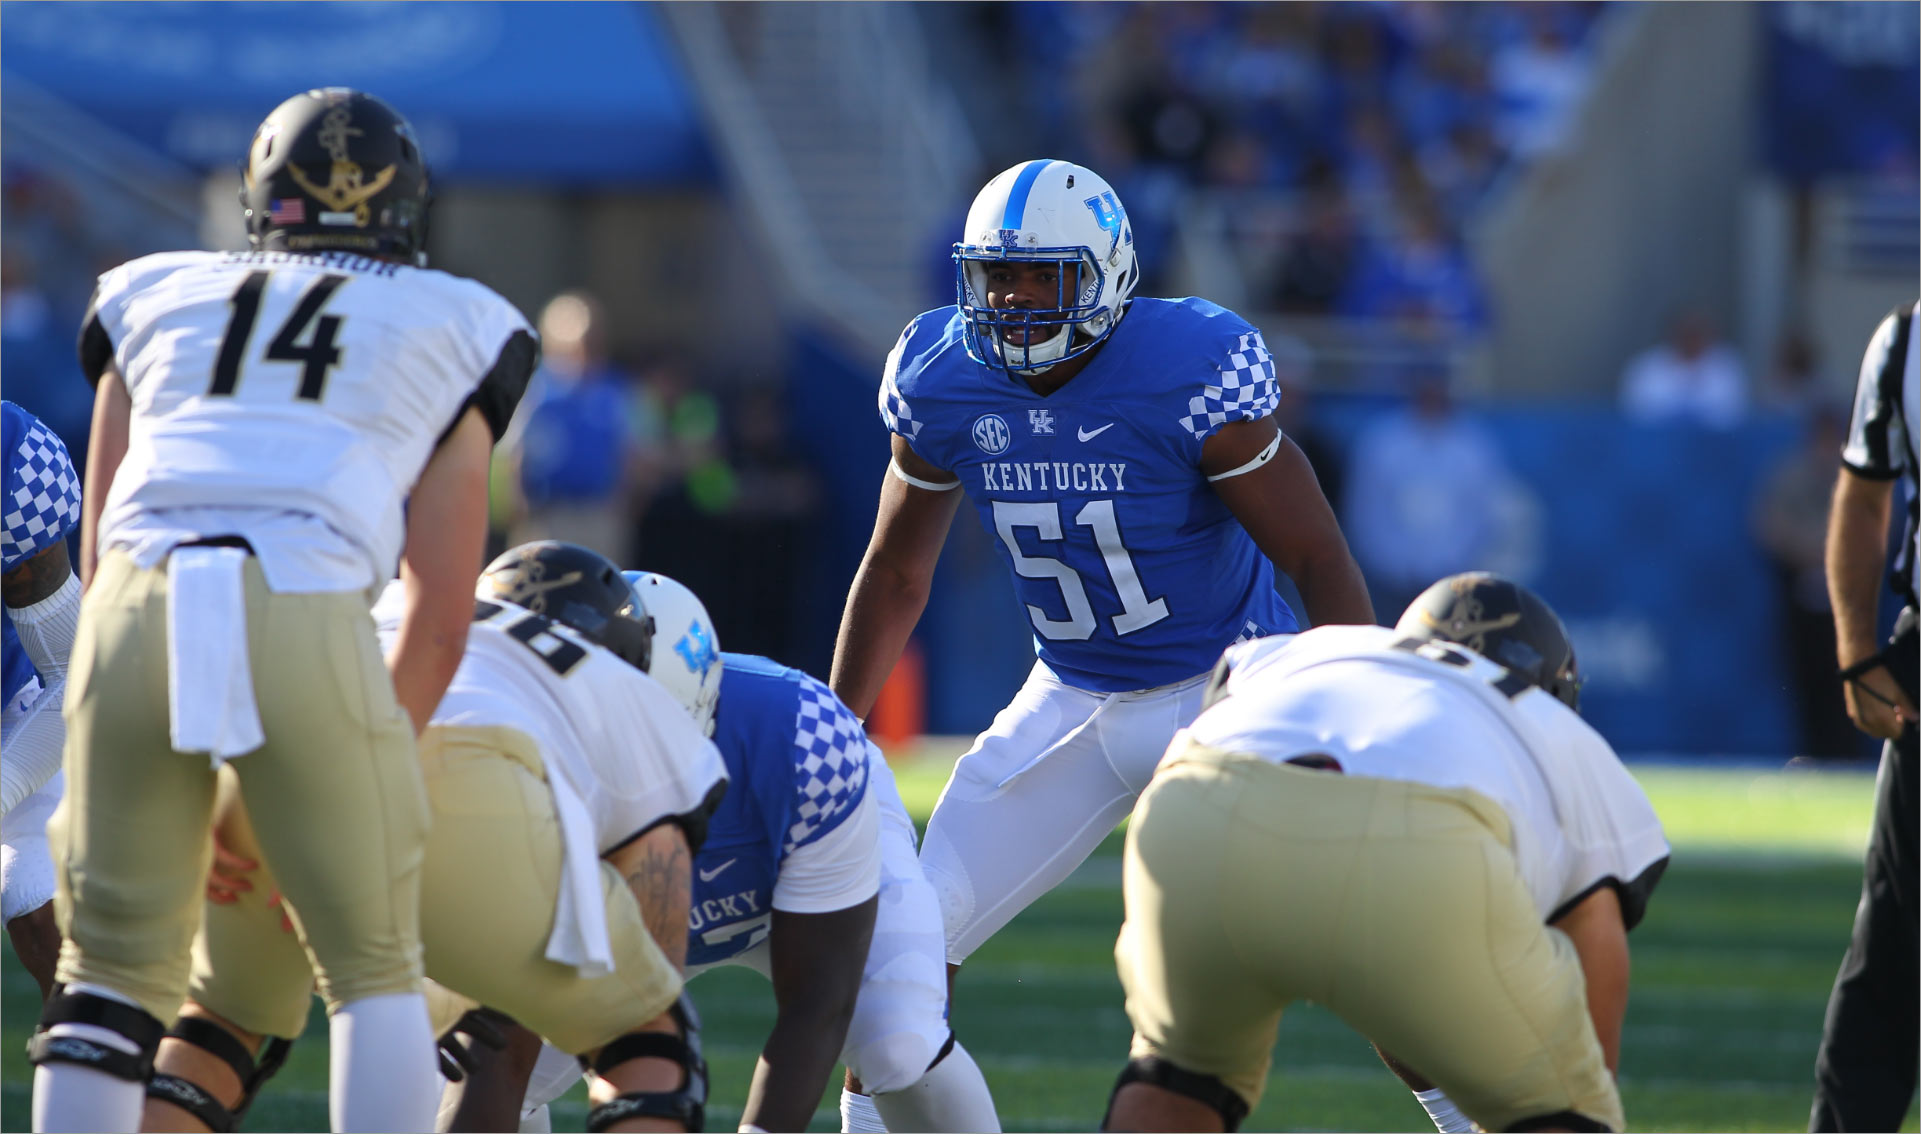 In a photo from his college football days, Courtney stands behind the line of scrimmage, wearing a blue Kentucky jersey with #51 on it.